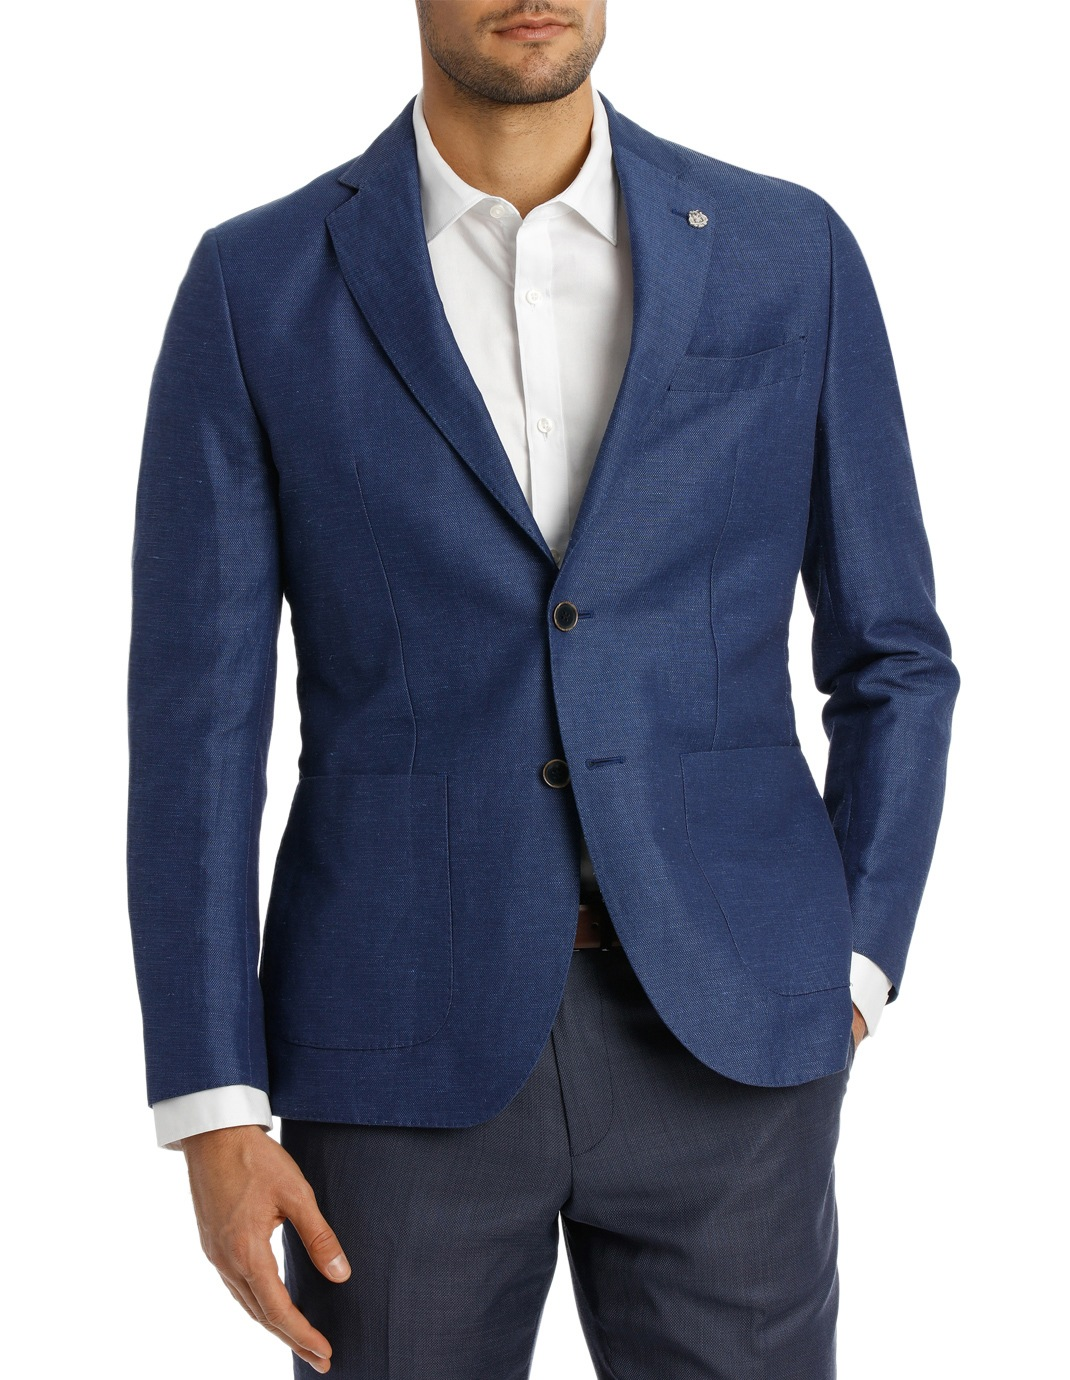 Shop men's sports jackets online and in store. Featuring top designers like Brunello Cucinelli, Armani Collezioni, BOSS, Dolce & Gabbana and more.